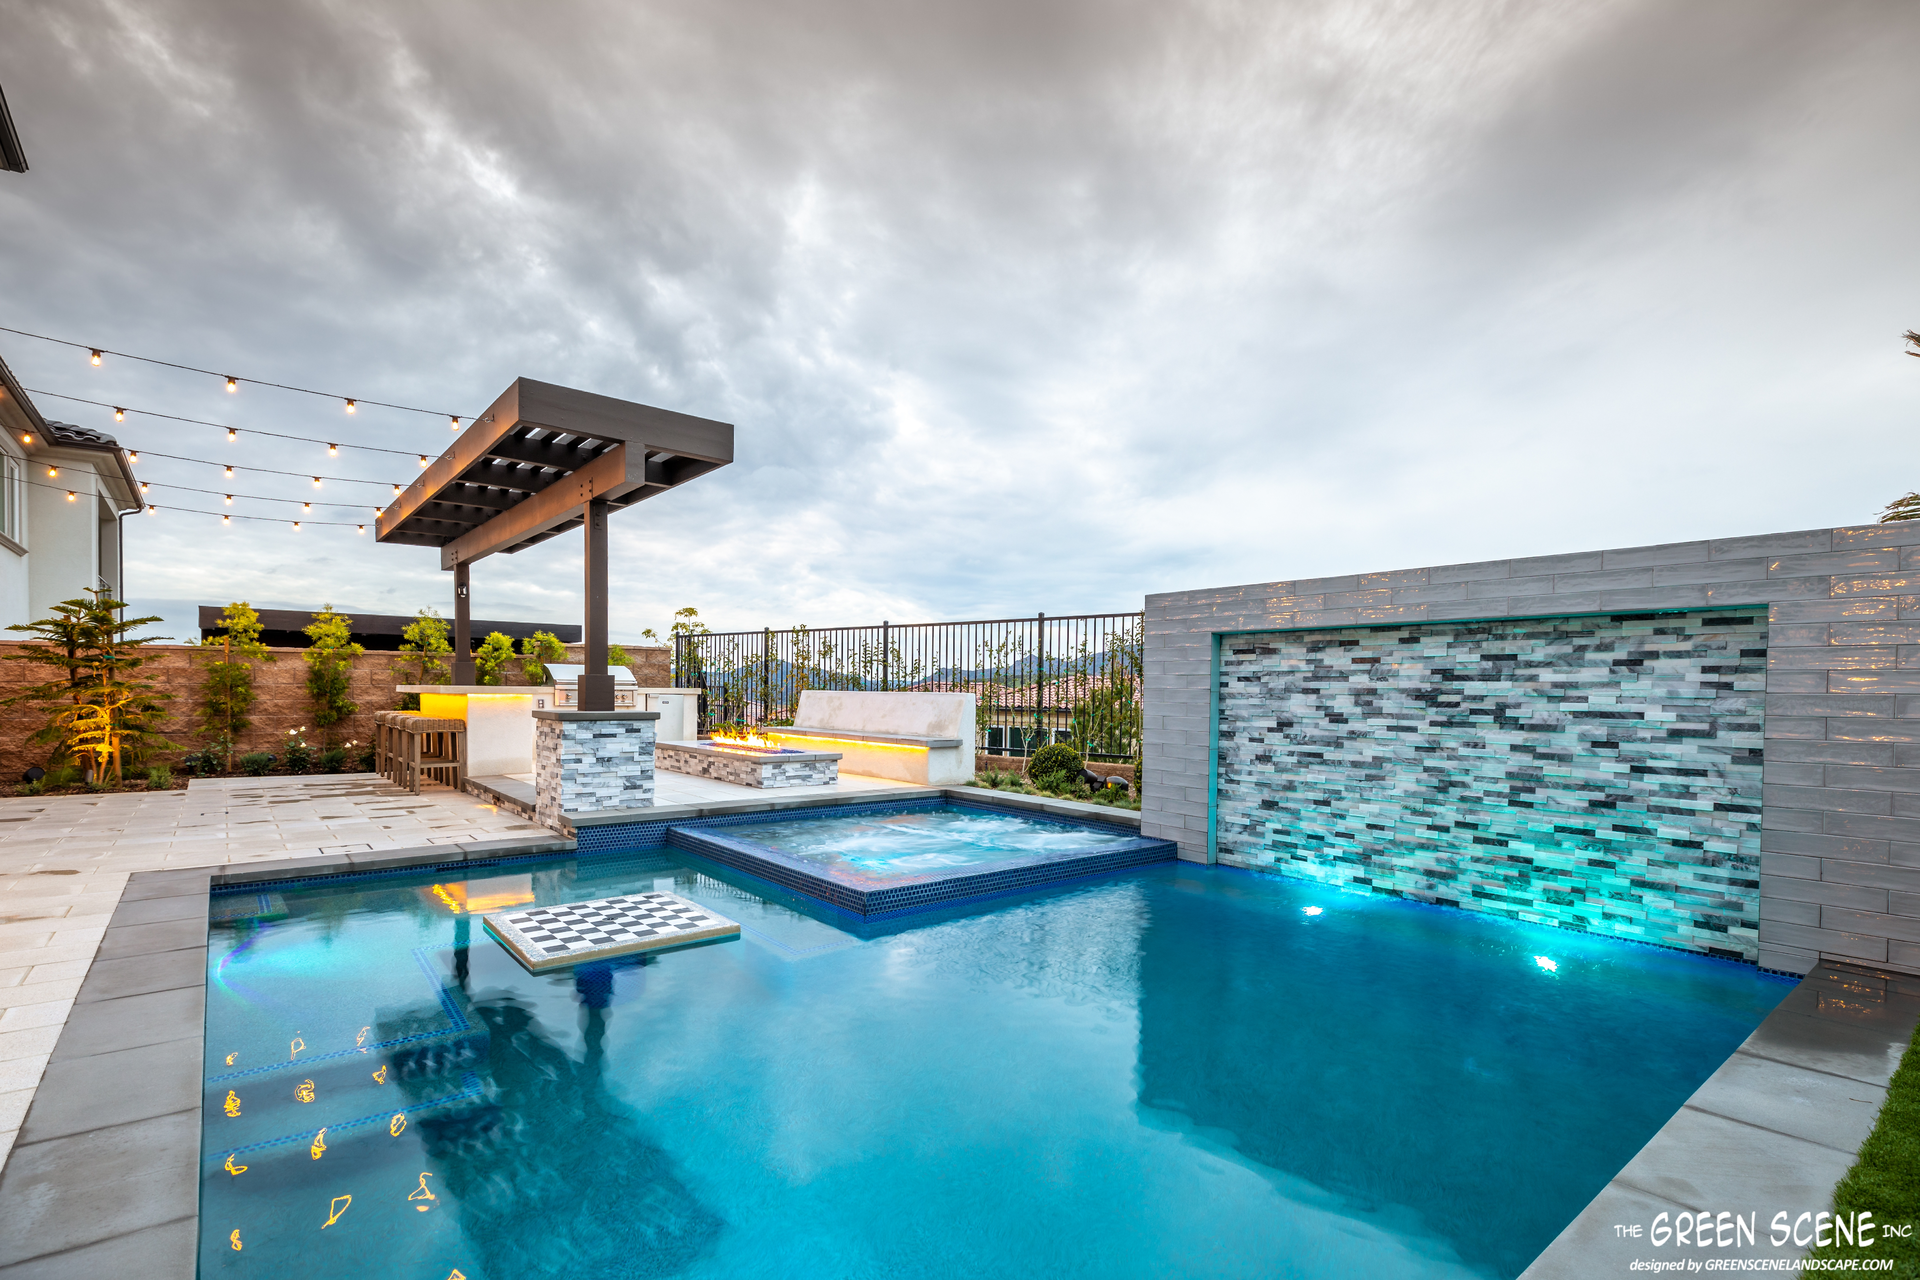 Linear pool designs are here to stay